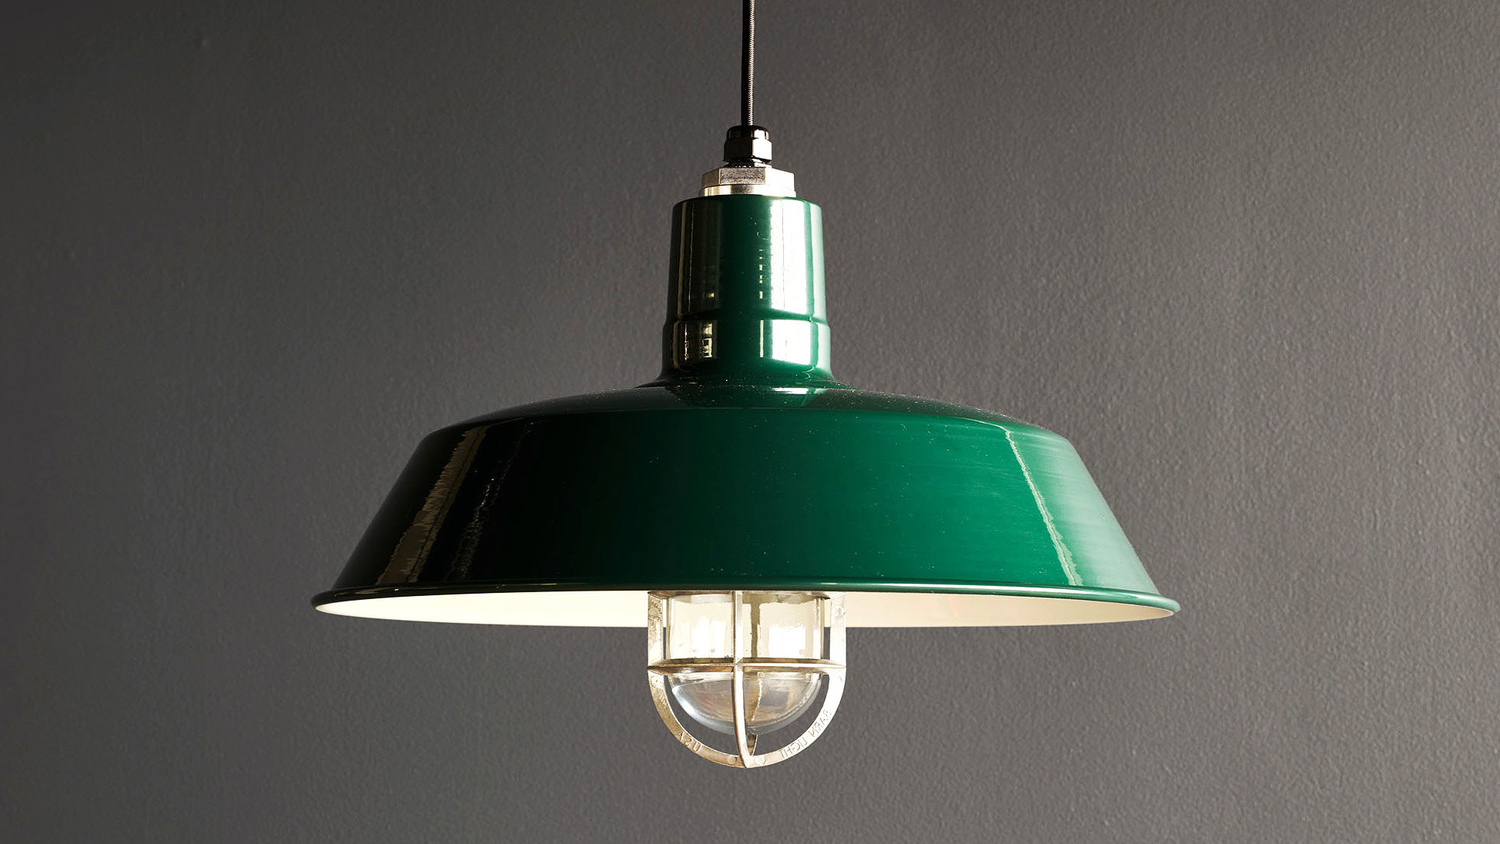 [%Snag This Hot Sale! 38% Off August Grove Crim Vintage 6 With Regard To Current Phifer 6 Light Empire Chandeliers|Phifer 6 Light Empire Chandeliers With Current Snag This Hot Sale! 38% Off August Grove Crim Vintage 6|Well Liked Phifer 6 Light Empire Chandeliers In Snag This Hot Sale! 38% Off August Grove Crim Vintage 6|Most Up To Date Snag This Hot Sale! 38% Off August Grove Crim Vintage 6 In Phifer 6 Light Empire Chandeliers%] (View 1 of 20)